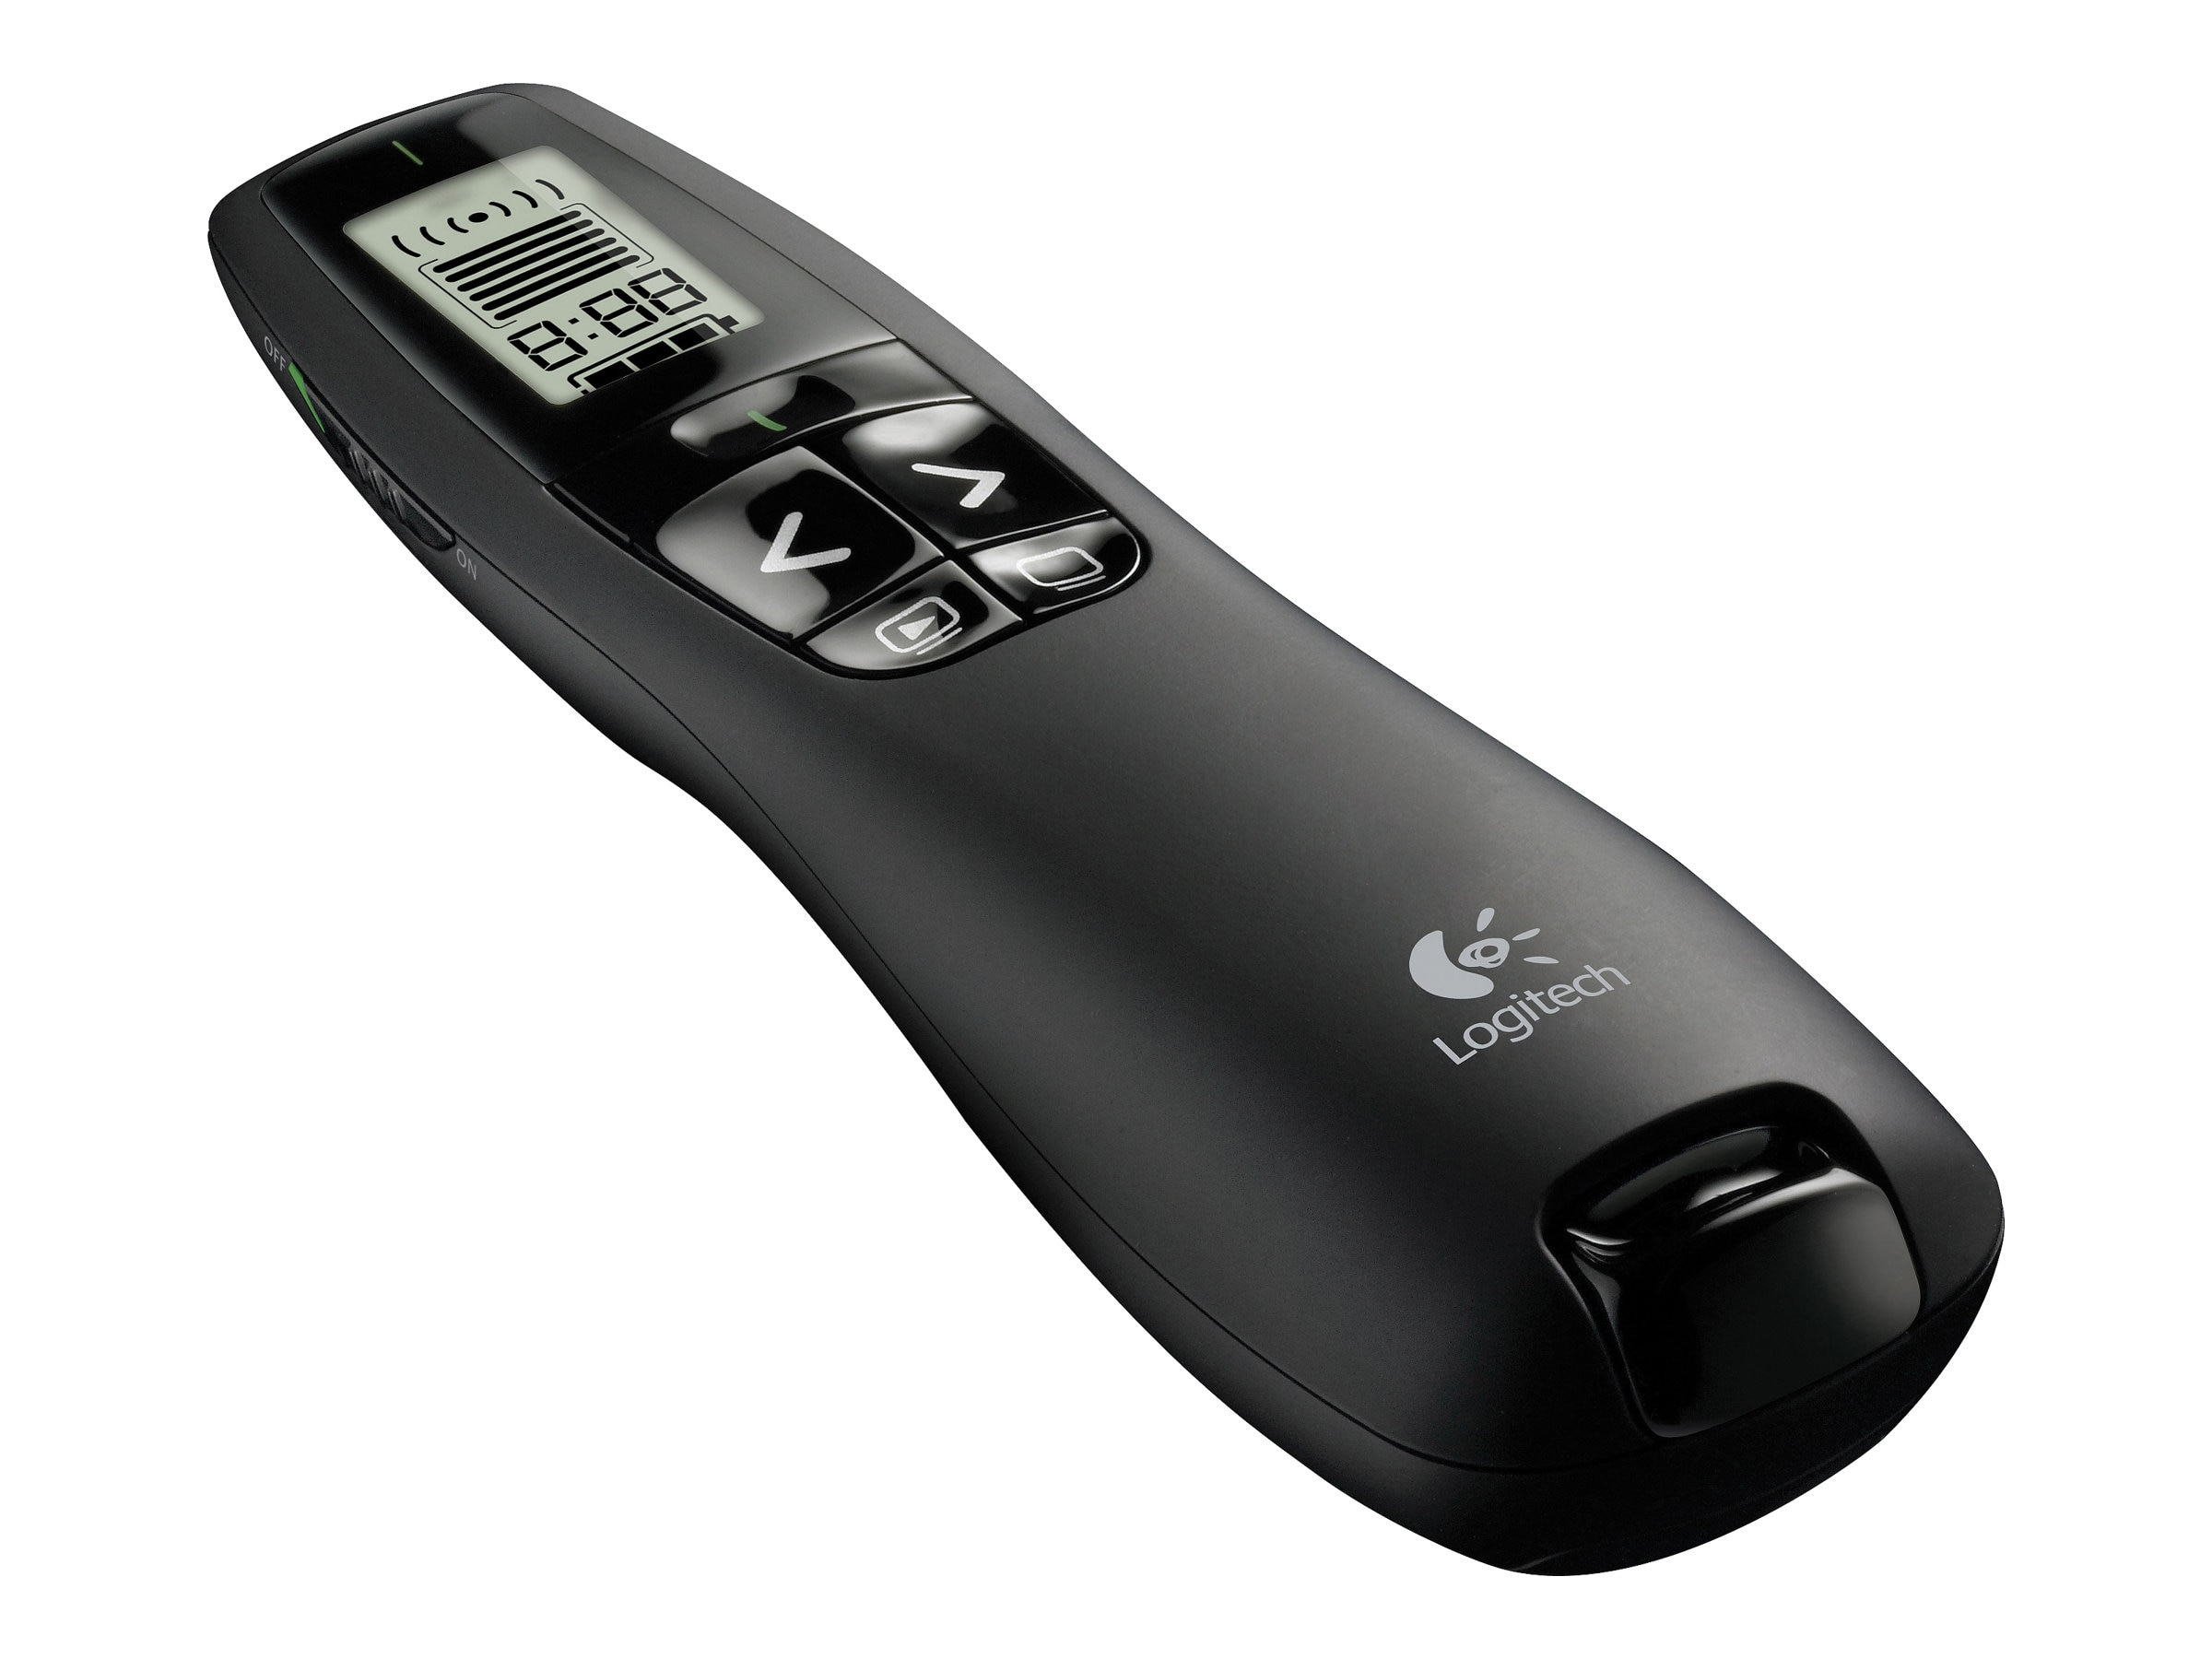 Logitech Professional Presenter R800, 910-001350